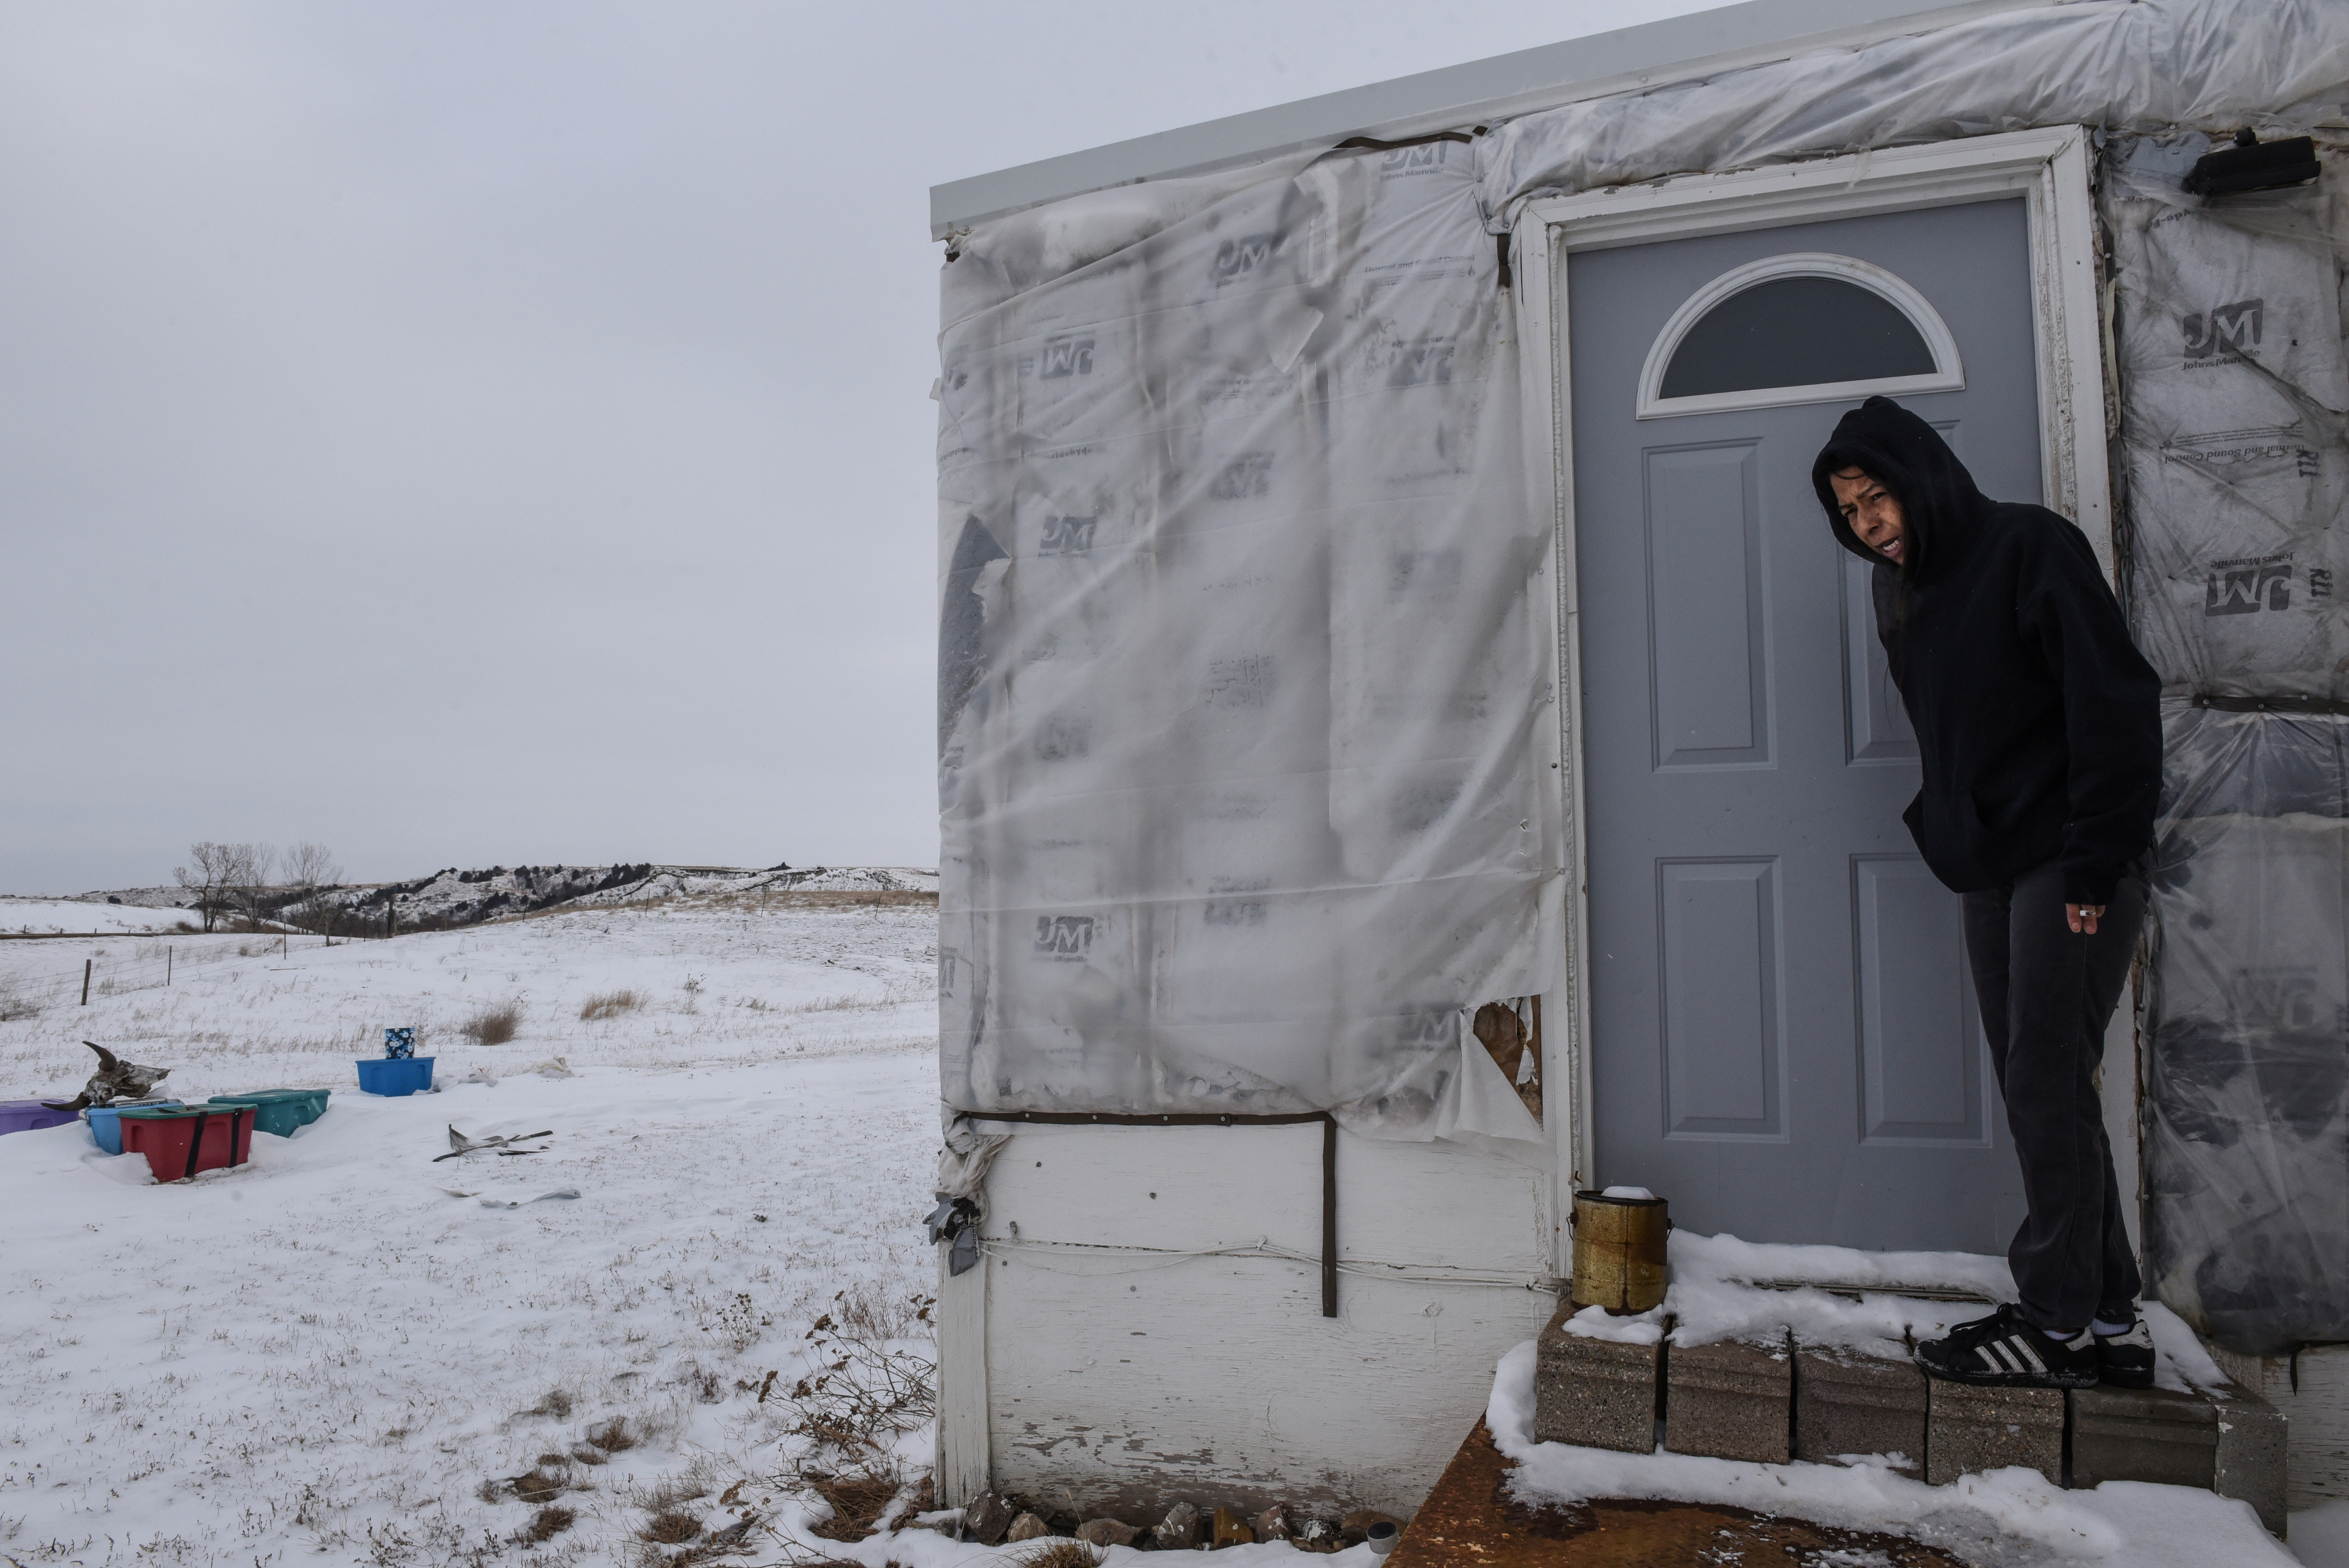 Lynn Provost stands in front of her trailer on the Cheyenne River Indian Reservation in Eagle Butte, South Dakota, U.S. January 25, 2019. REUTERS/Stephanie Keith